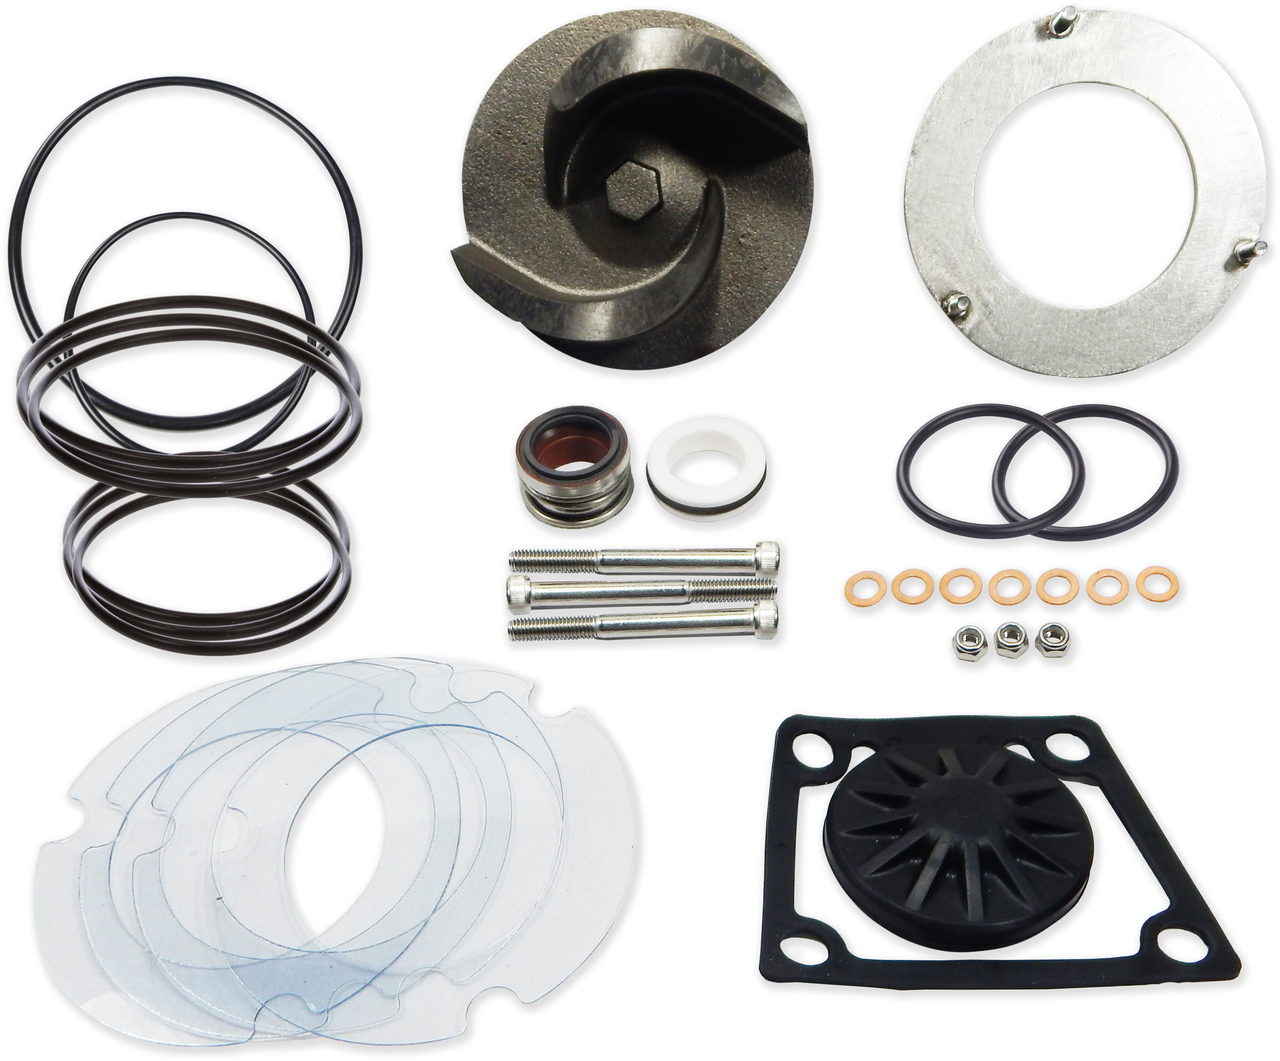 Wacker PT3 Trash Pump Rebuild Kit